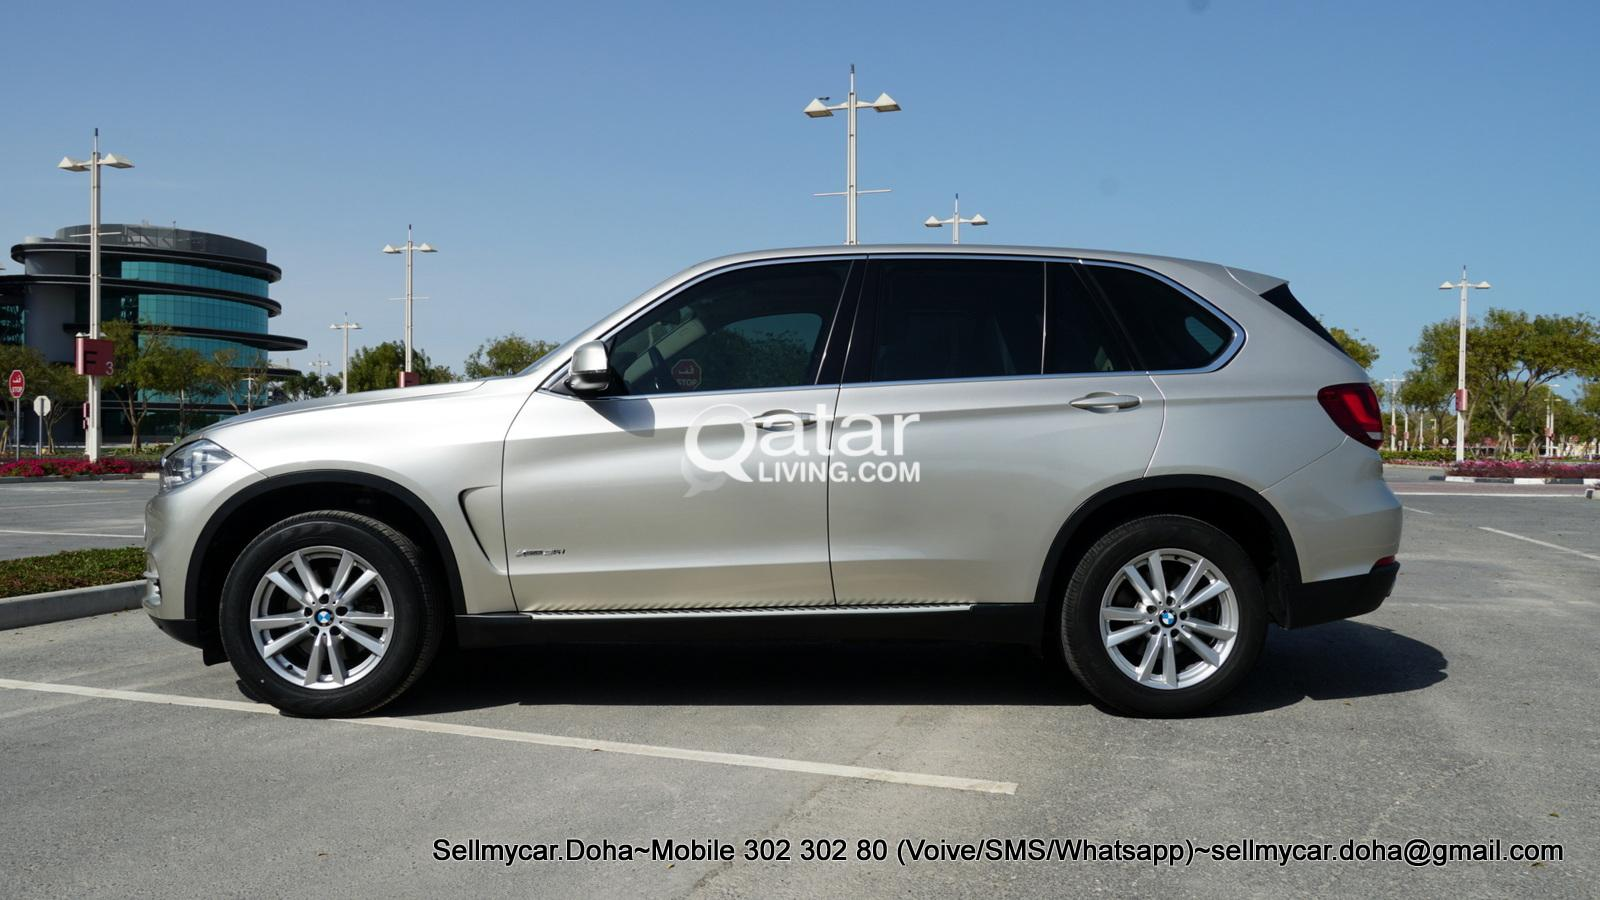 2014 BMW X5 3.5 X-Drive (Premium Package) Free BMW Service PKG until 2024